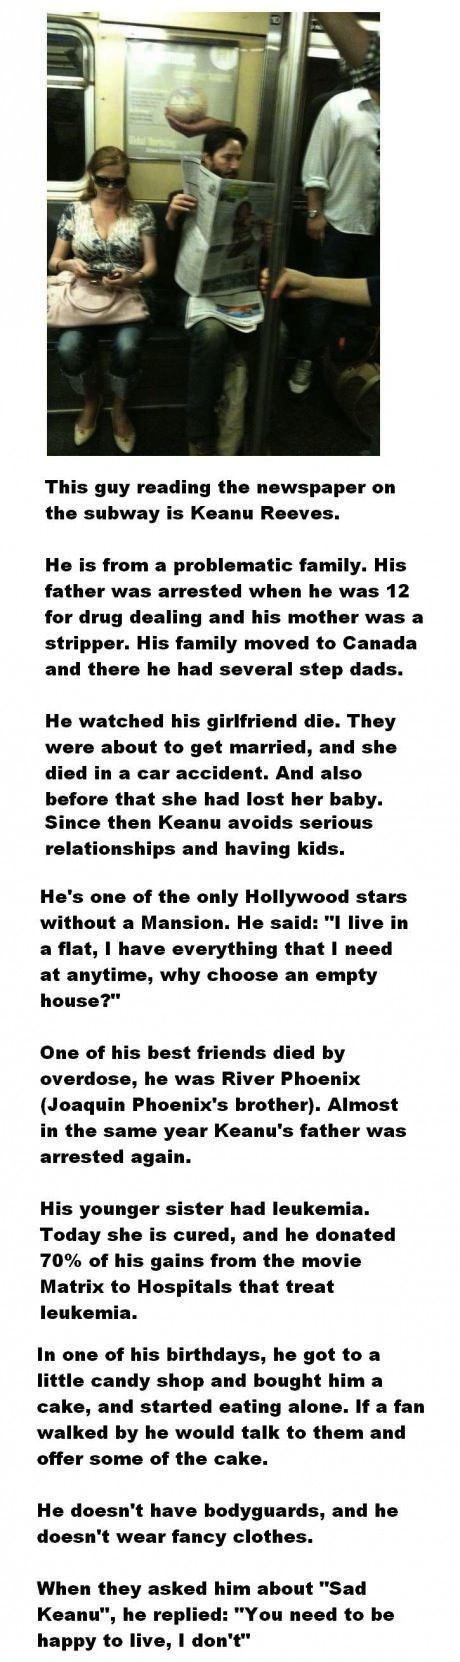 A STORY ABOUT KEANU REEVES.